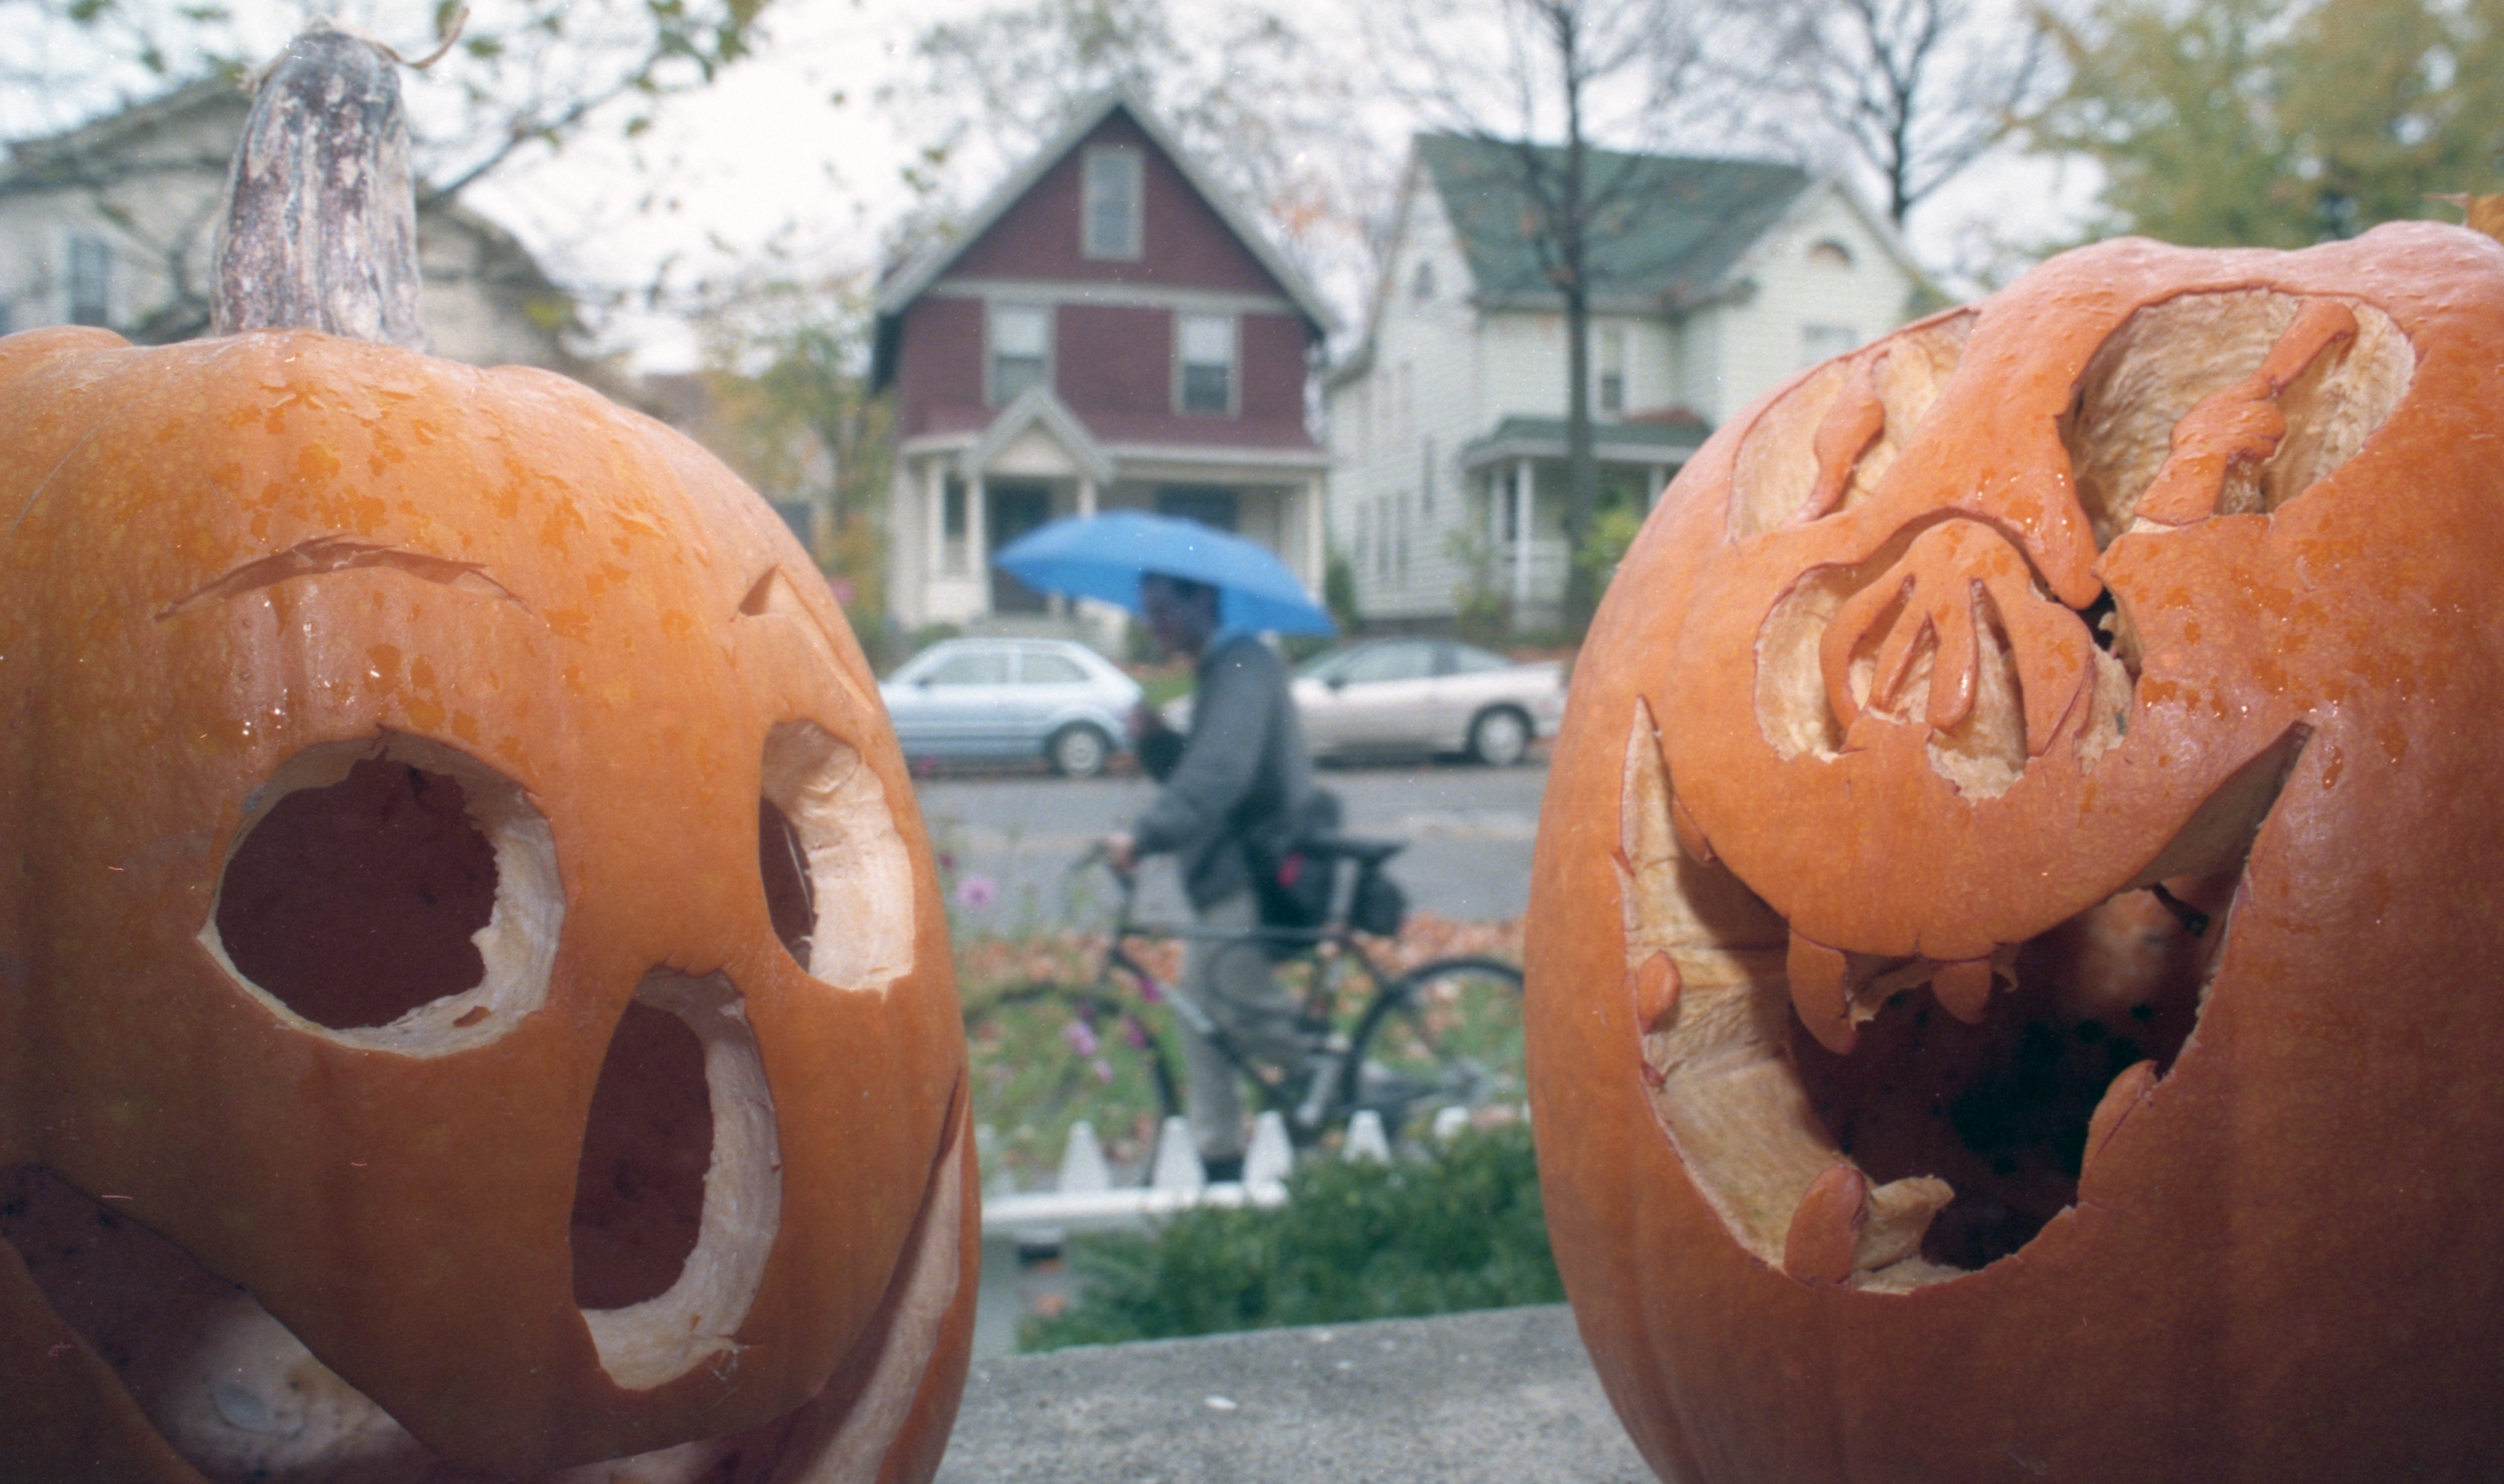 Pumpkins Decorate The Front Porch Of The Michigan House Co-Op, October 1994 image